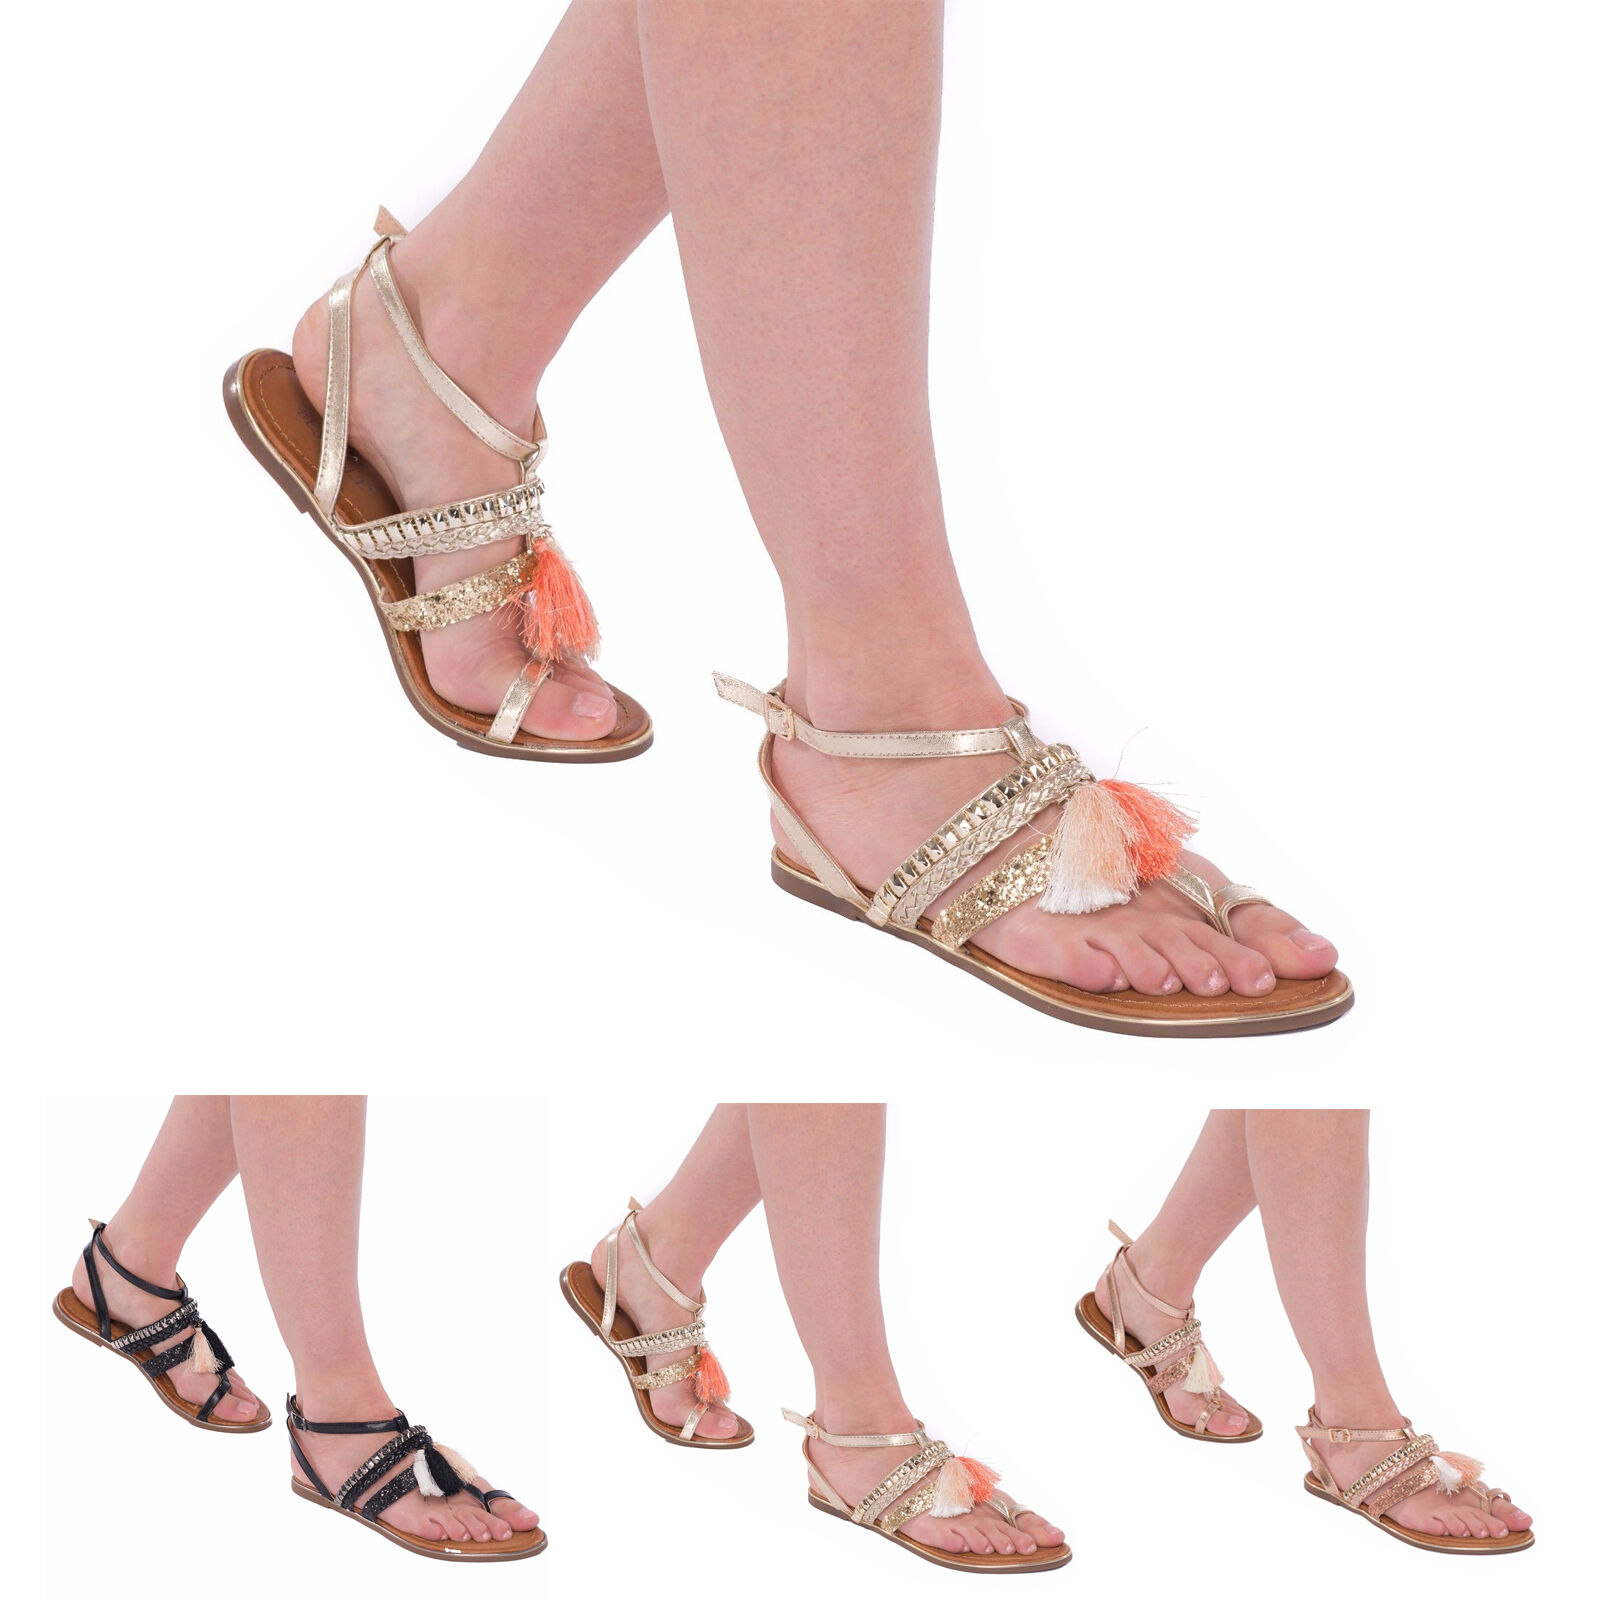 Women's Ladies PU Flats Summer Buckle Gladiators PU Ladies Leather Fringed Sandals Shoes 16c112